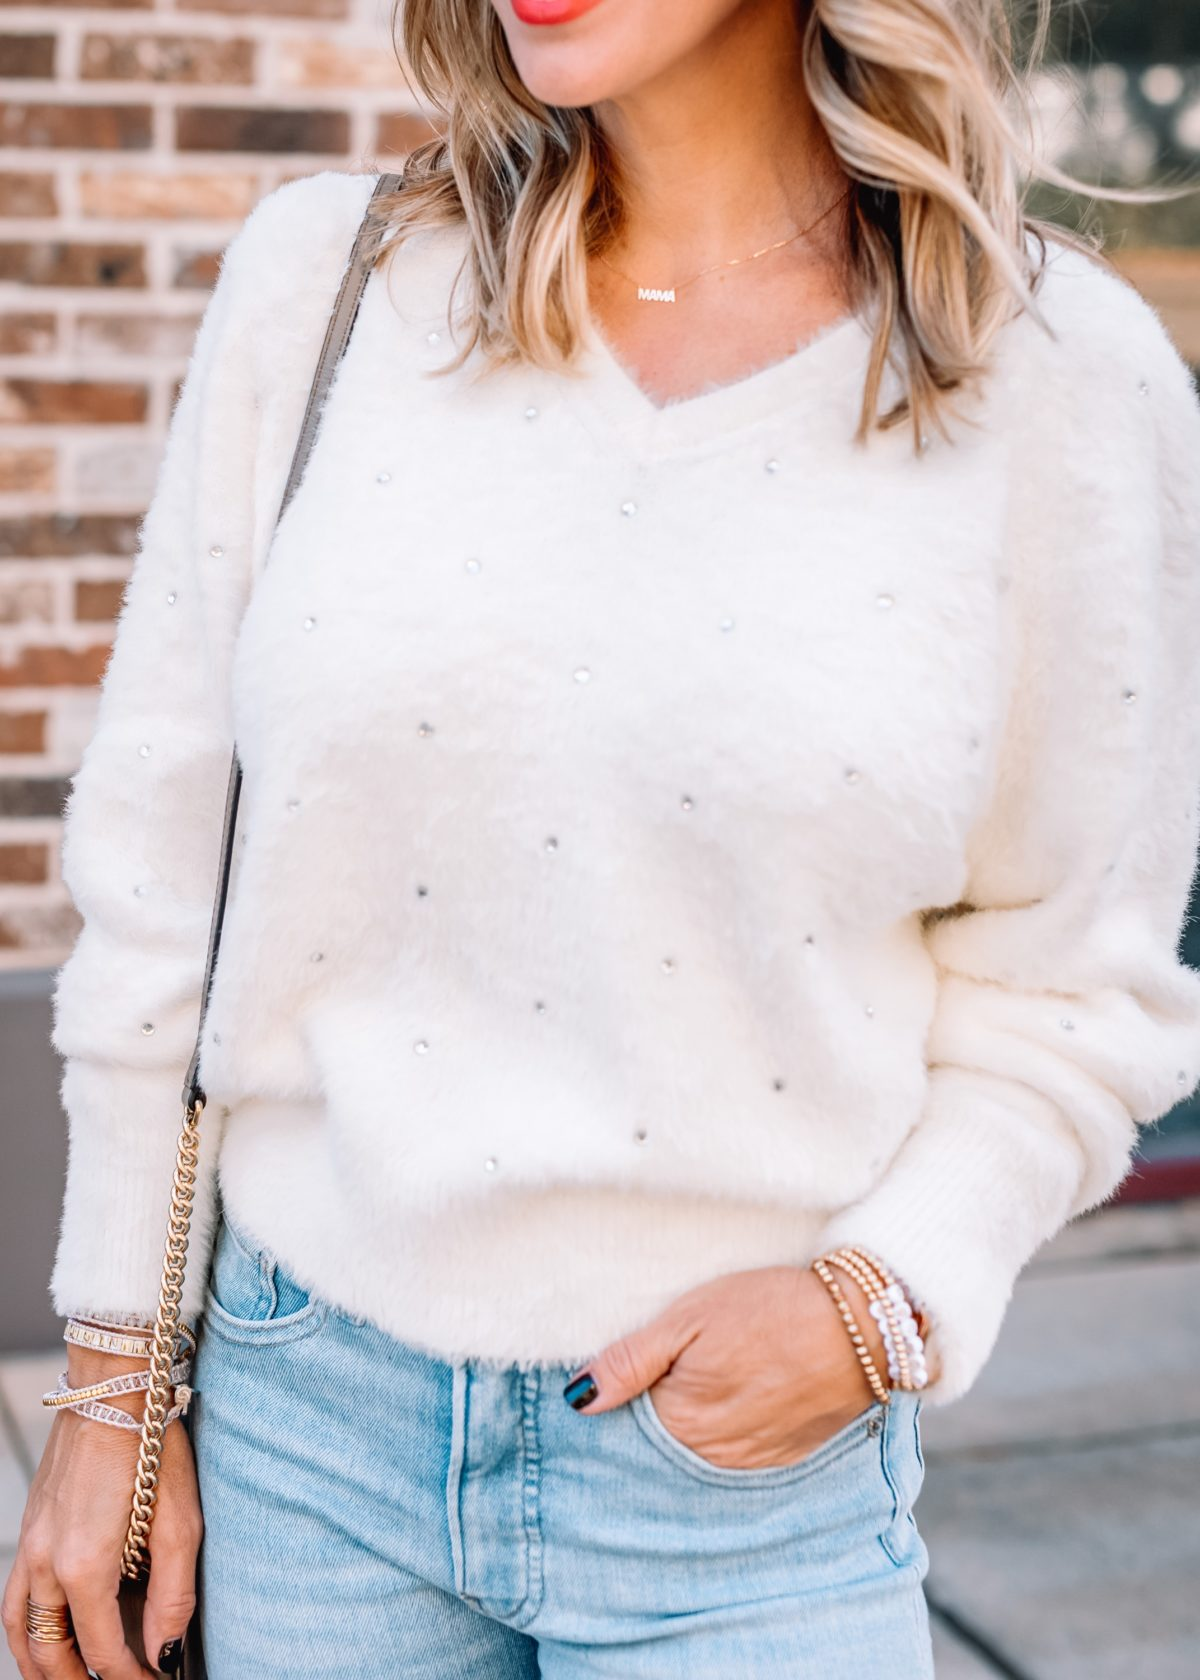 Express Sweater, Skinny Jeans